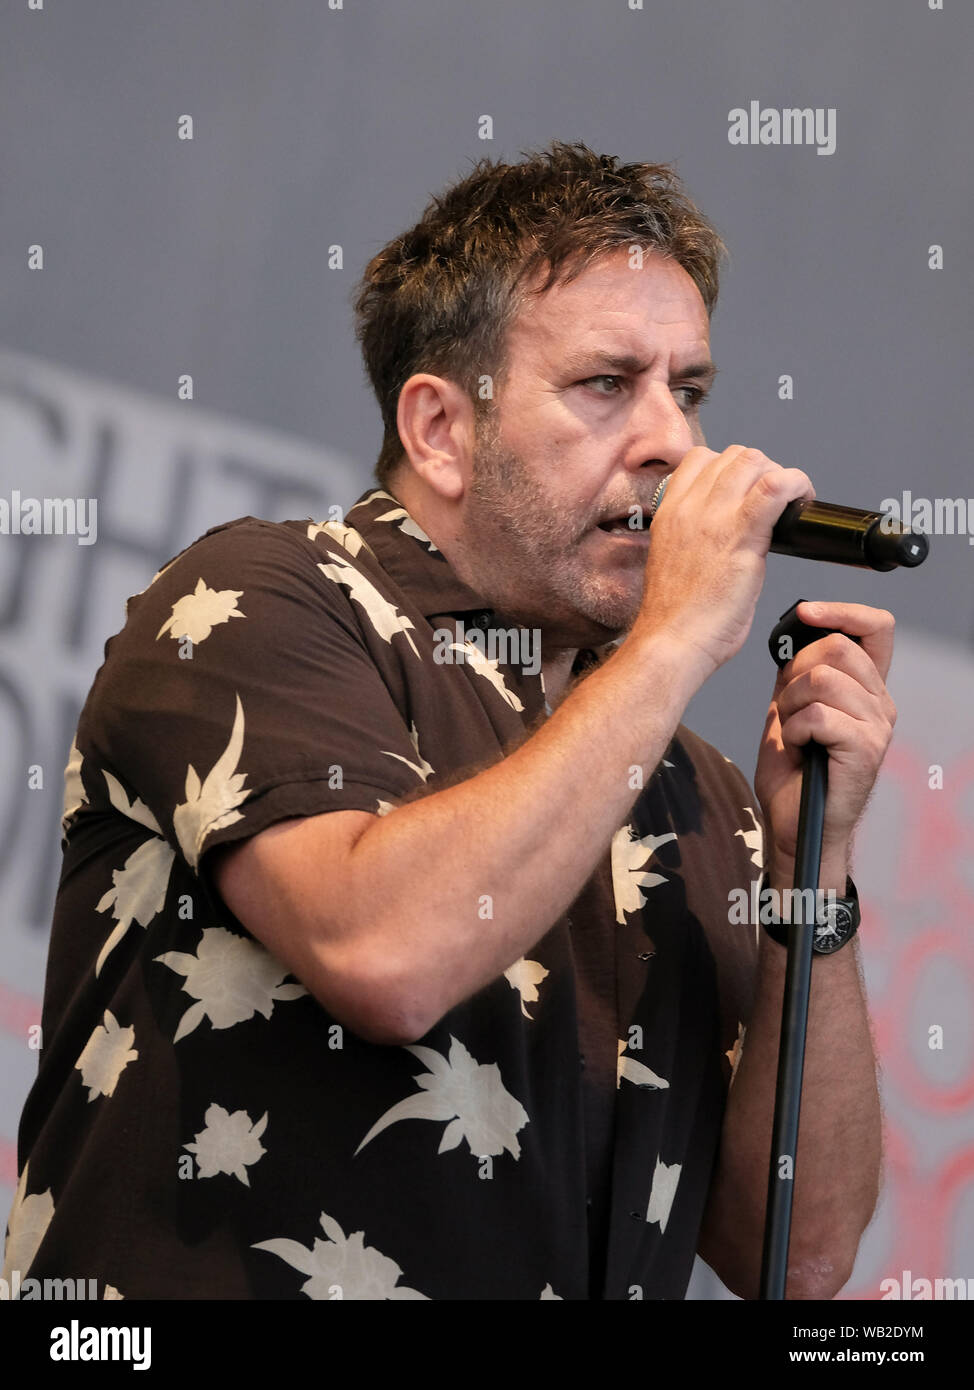 Portsmouth, Hampshire, UK. August 23rd 2019. Terry Hall vocalist with the Specials performing live on stage at Victorious Festival, Southsea, Portsmouth, Hampshire UK Credit: Dawn Fletcher-Park/Alamy Live News Stock Photo